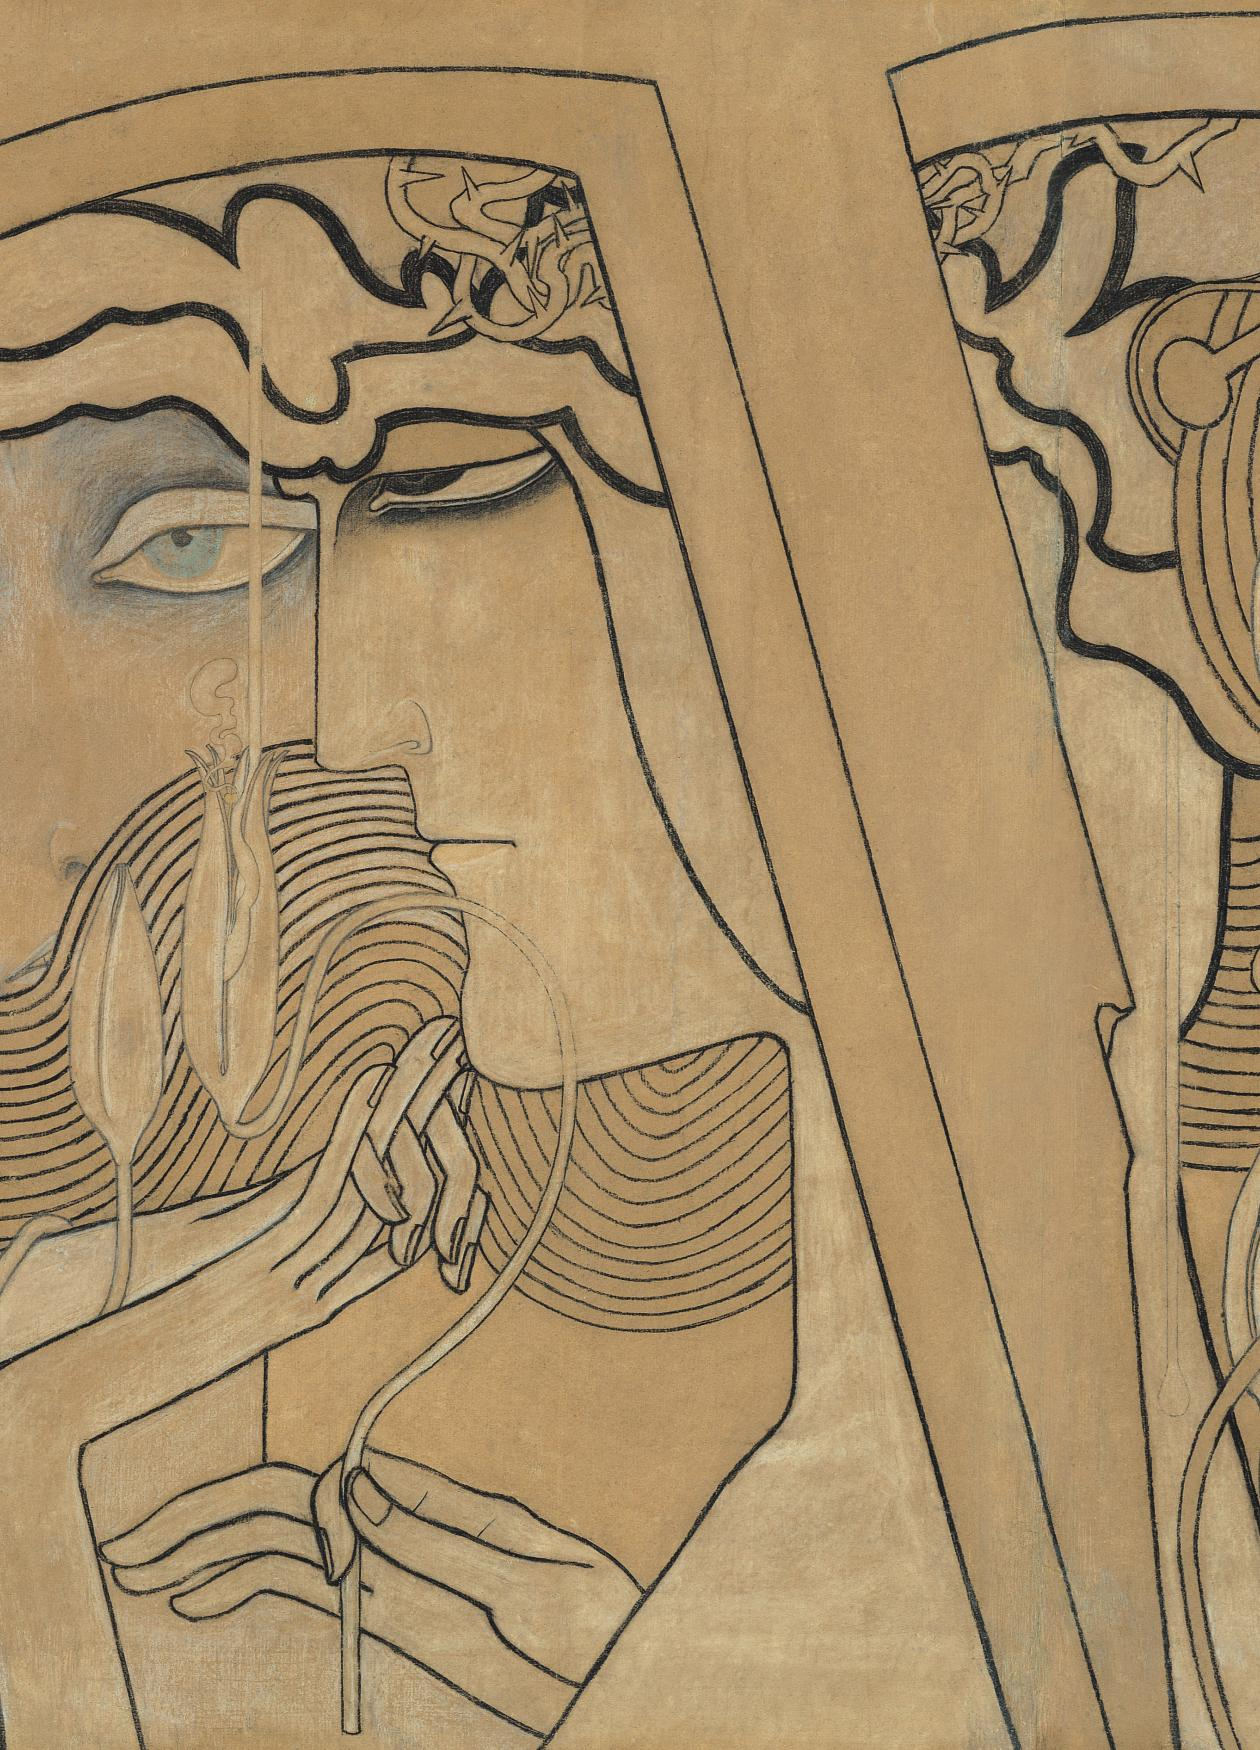 Brown / yellow painting by Jan Theodore Toorop depicting abstract faces.